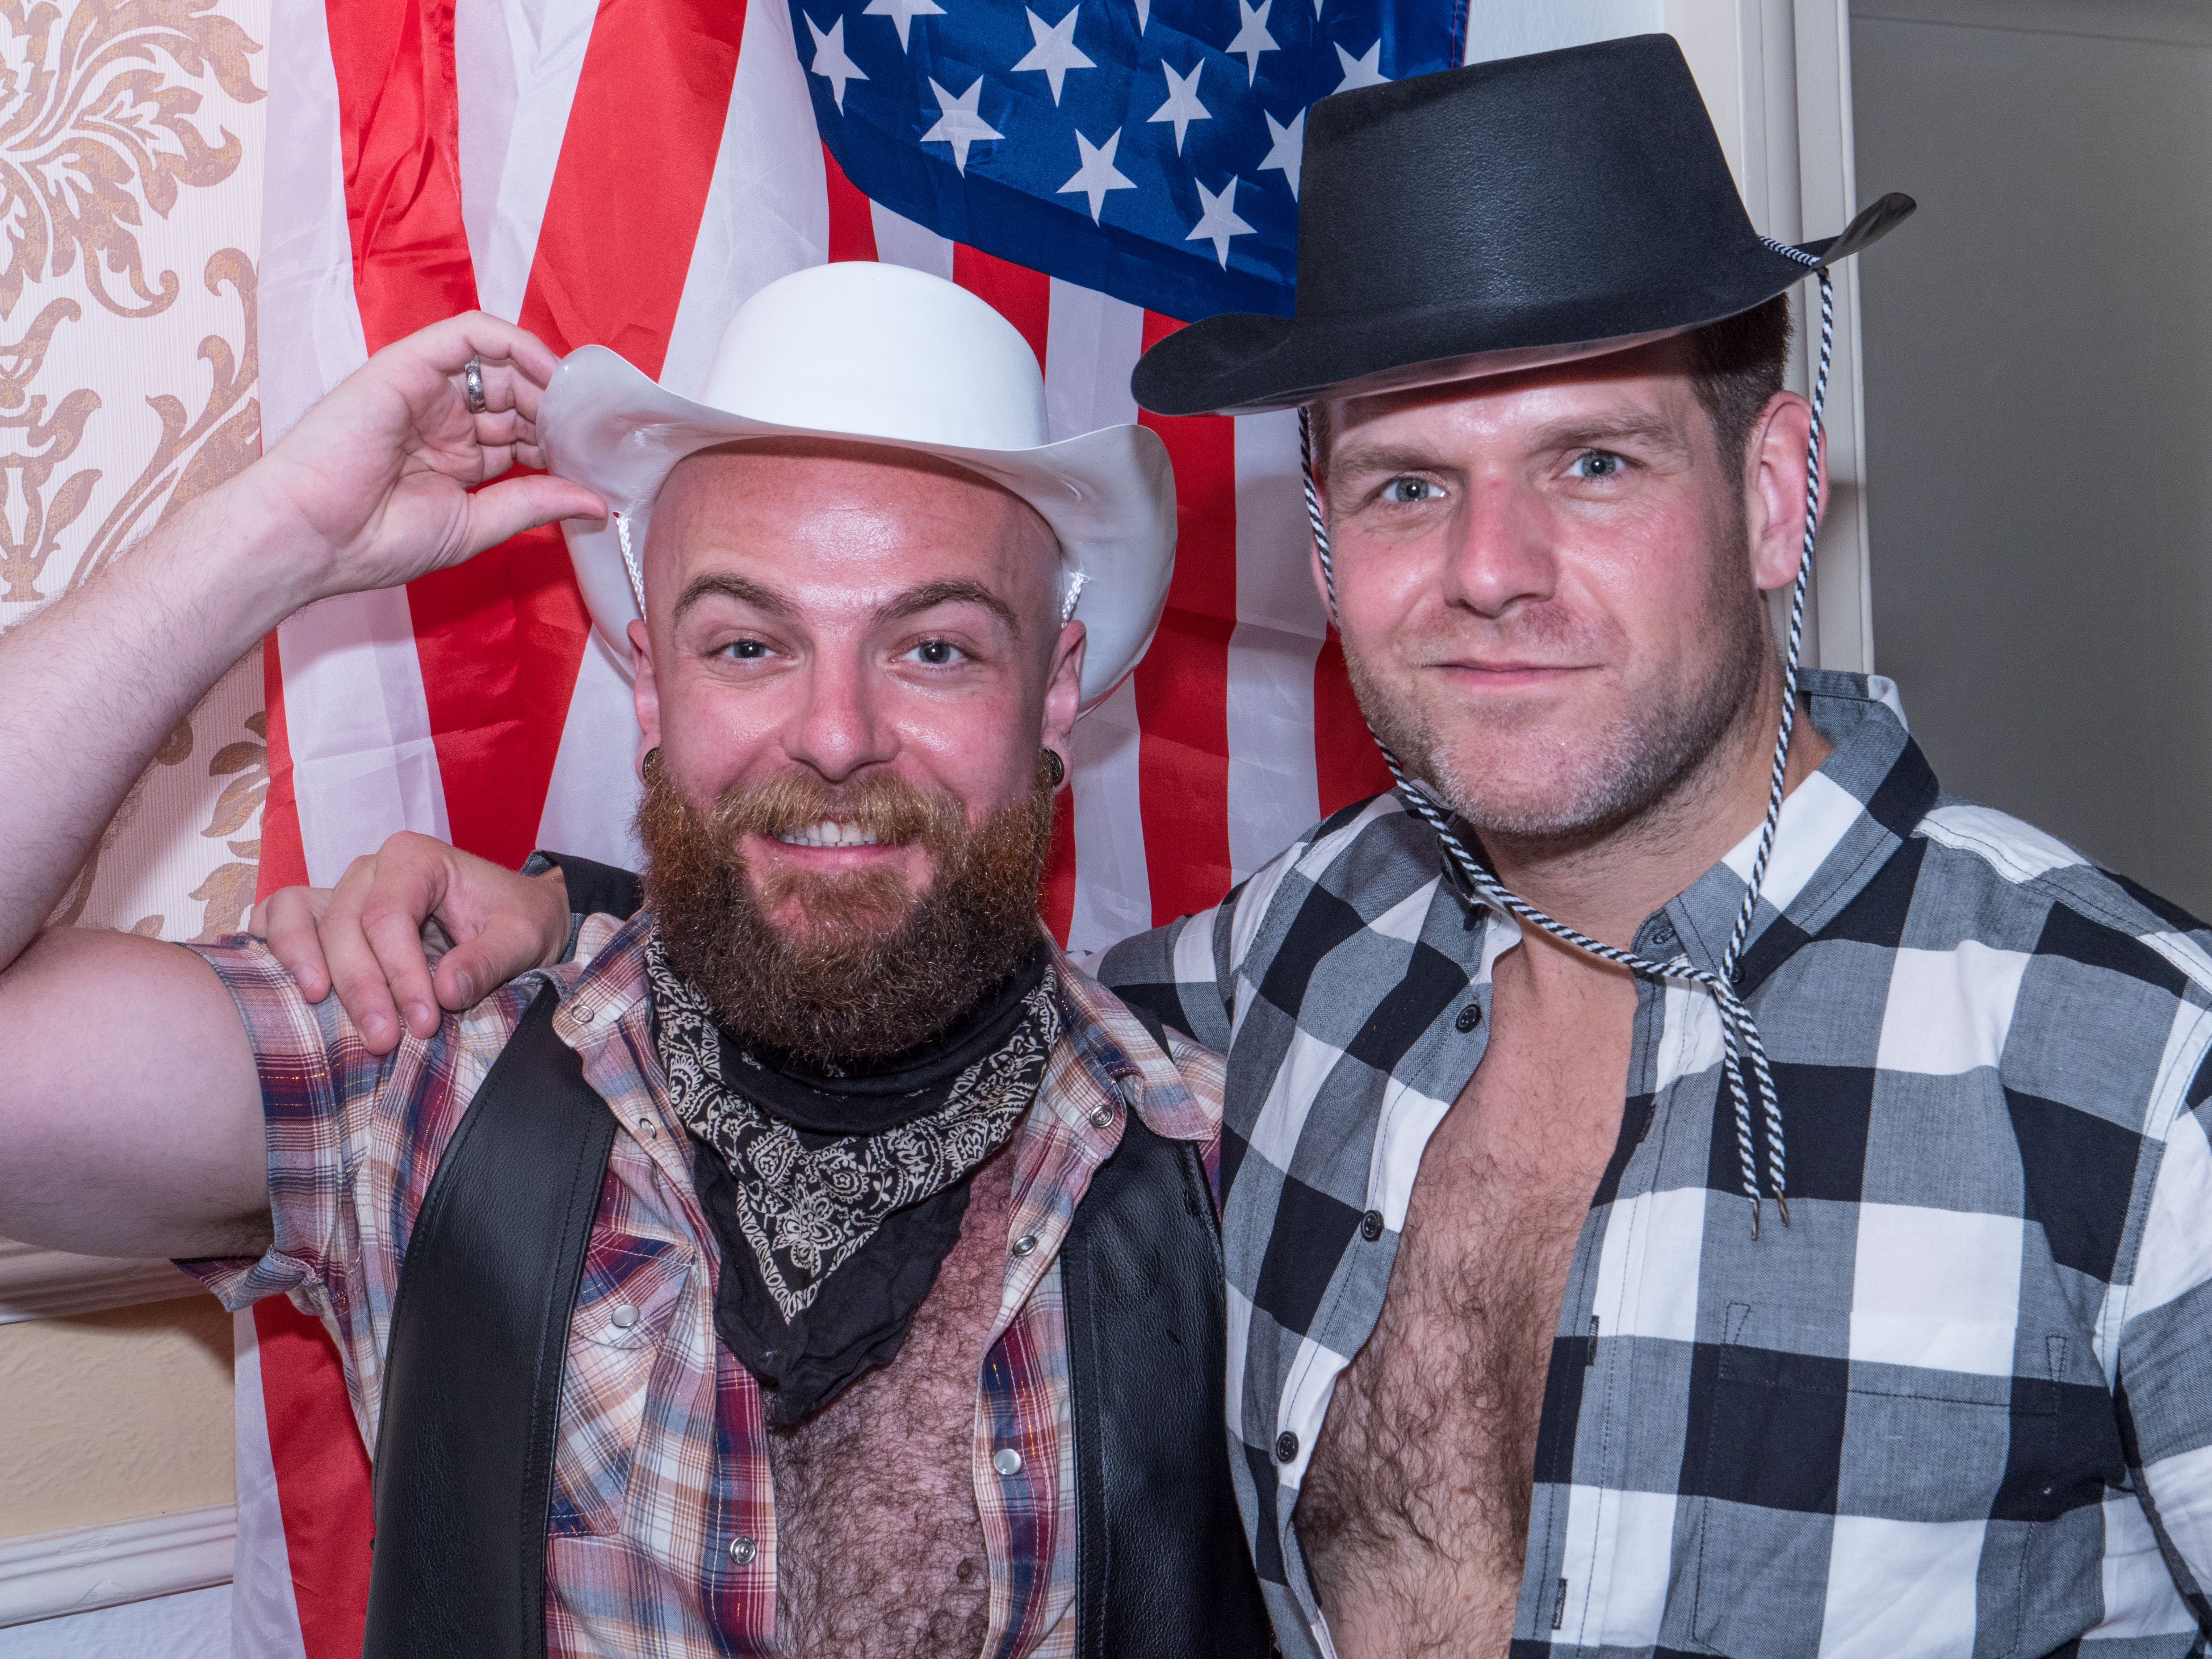 'Cowboys and Queens' raffle raises £300 for Rainbow Fund